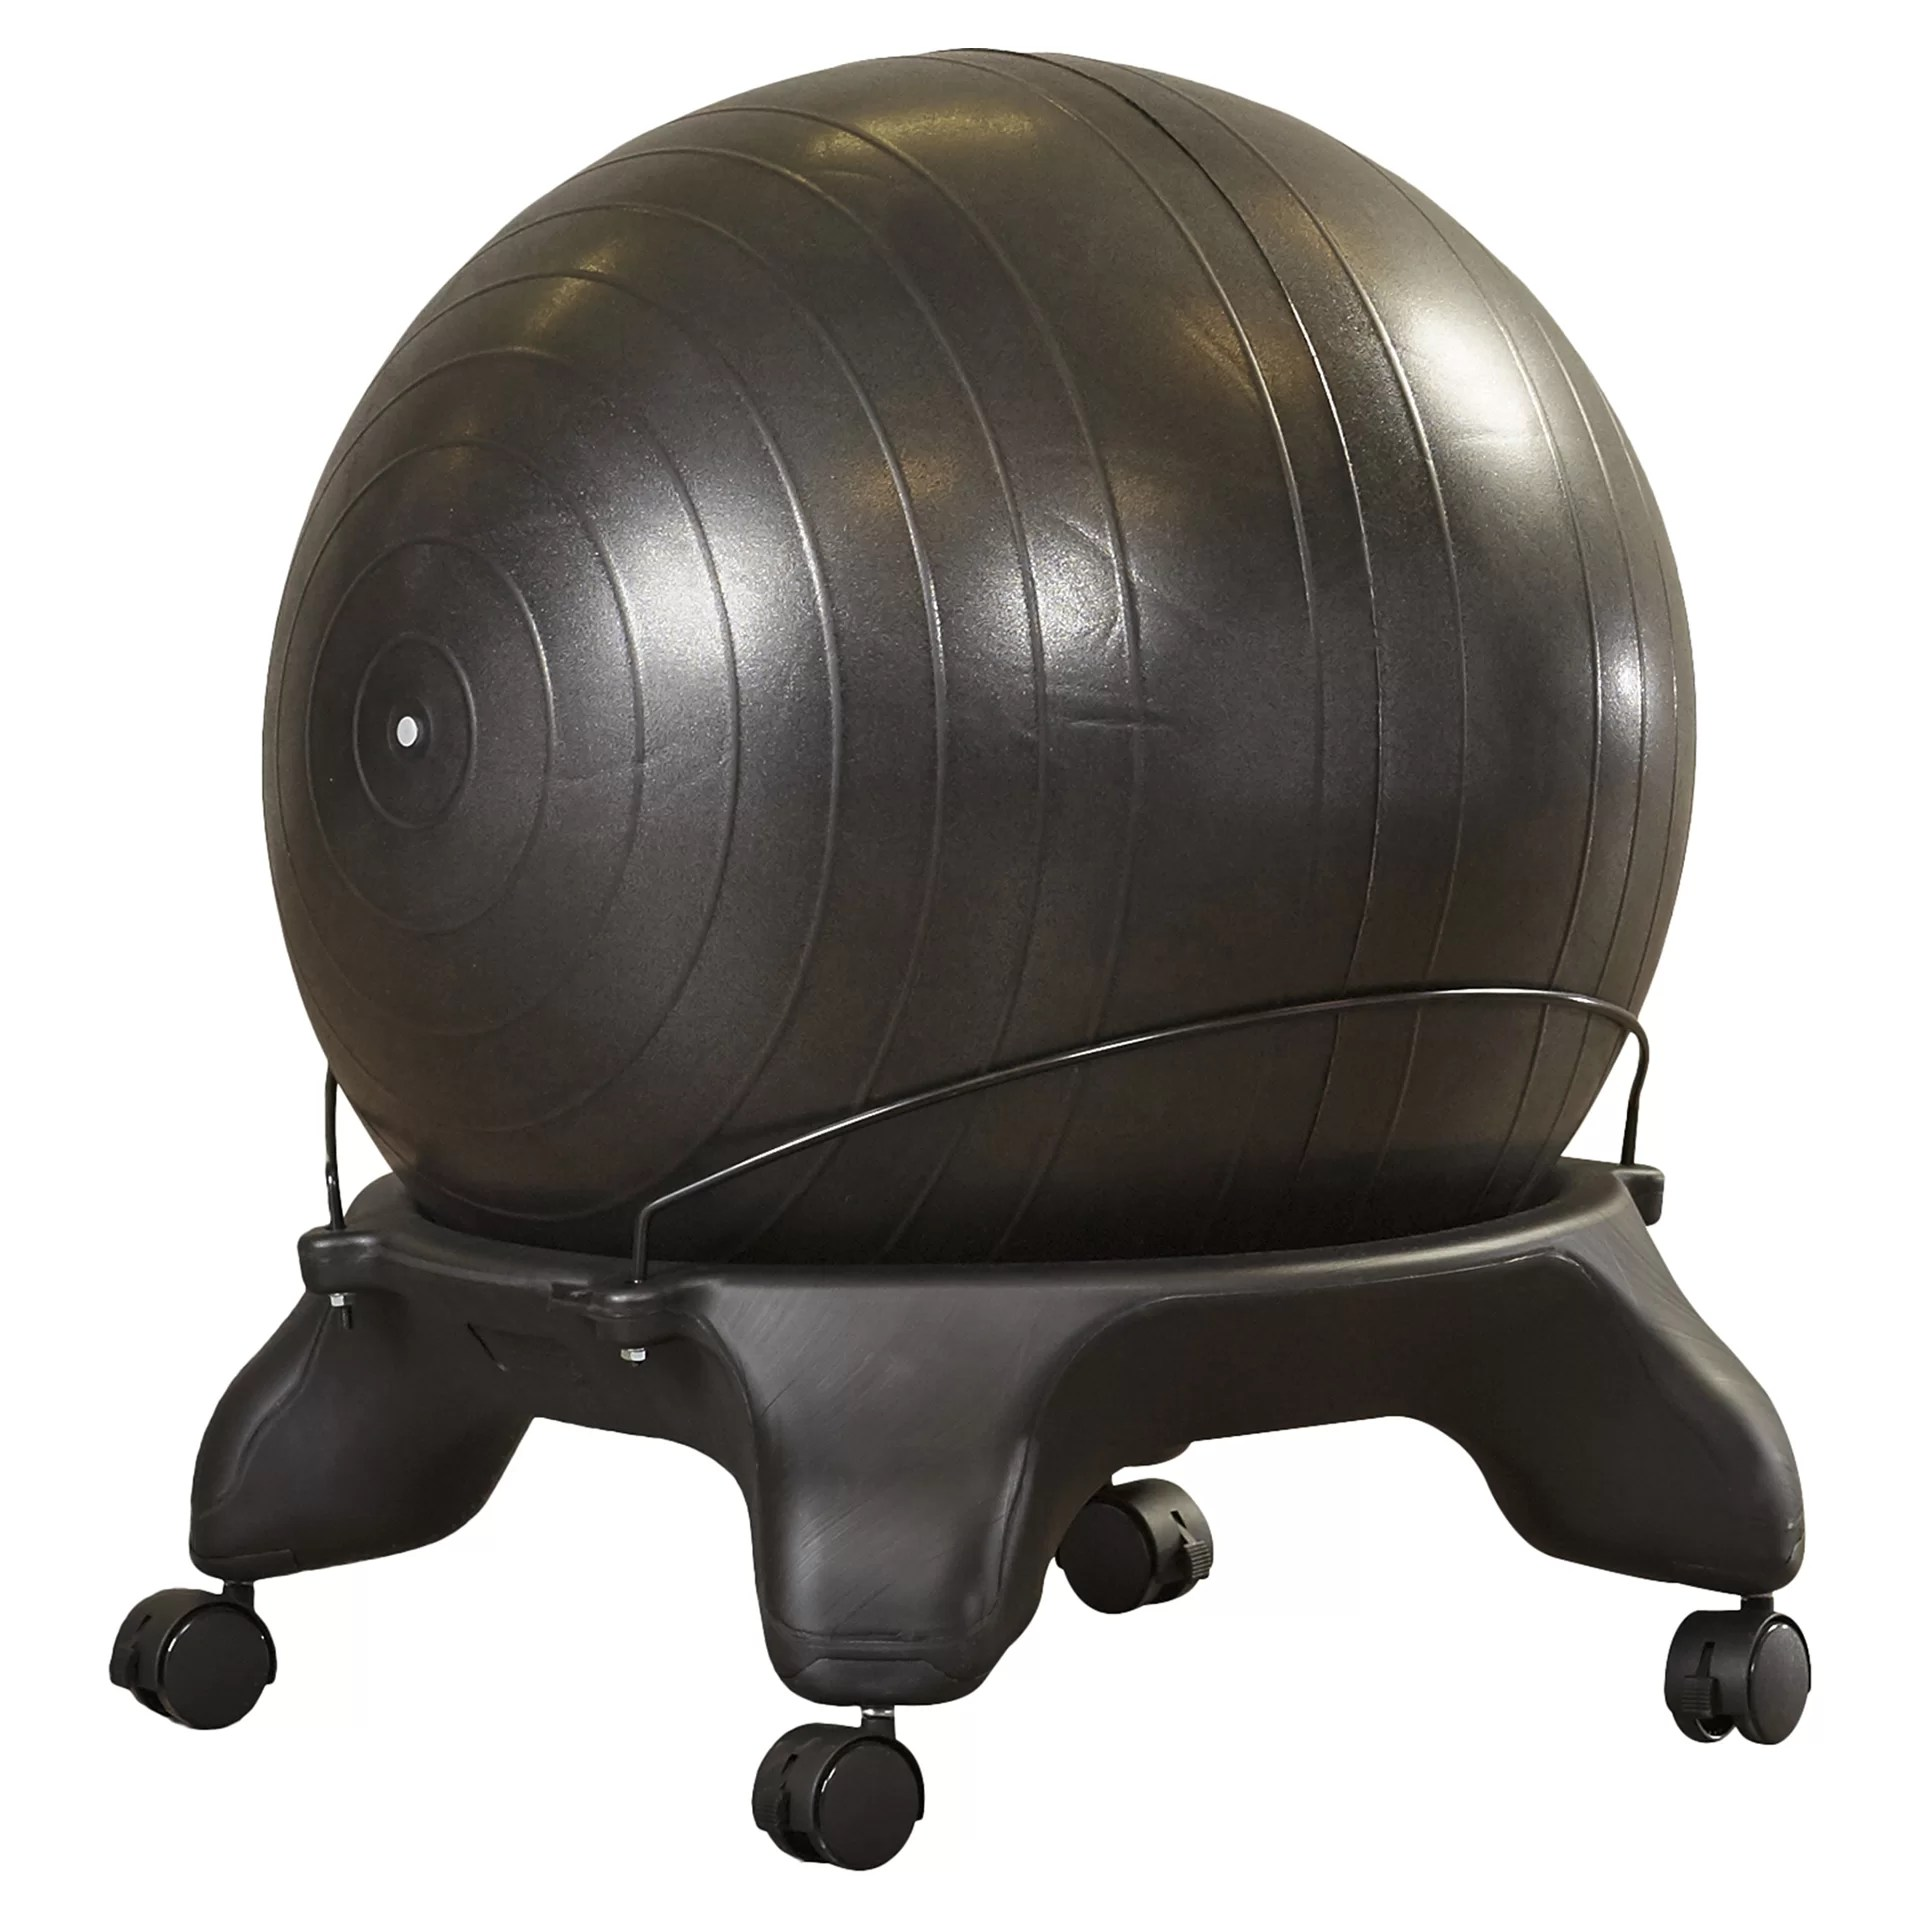 Pilates Ball Chair Symple Stuff Exercise Ball Chair And Reviews Wayfair